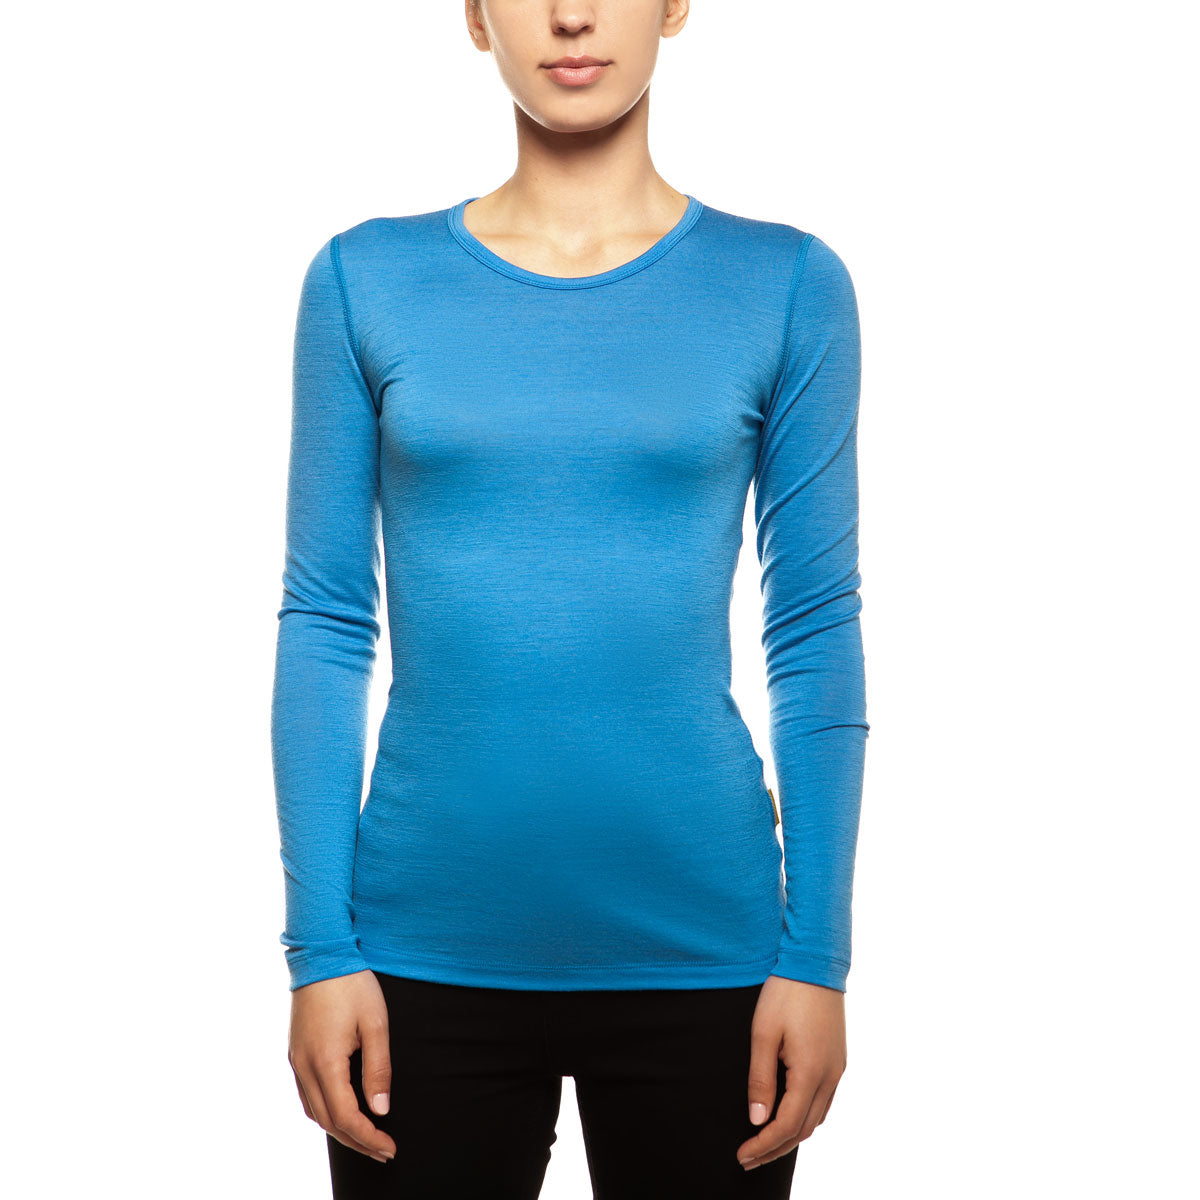 menique Women's Merino 160 Long Sleeve Crew Light Blue Color